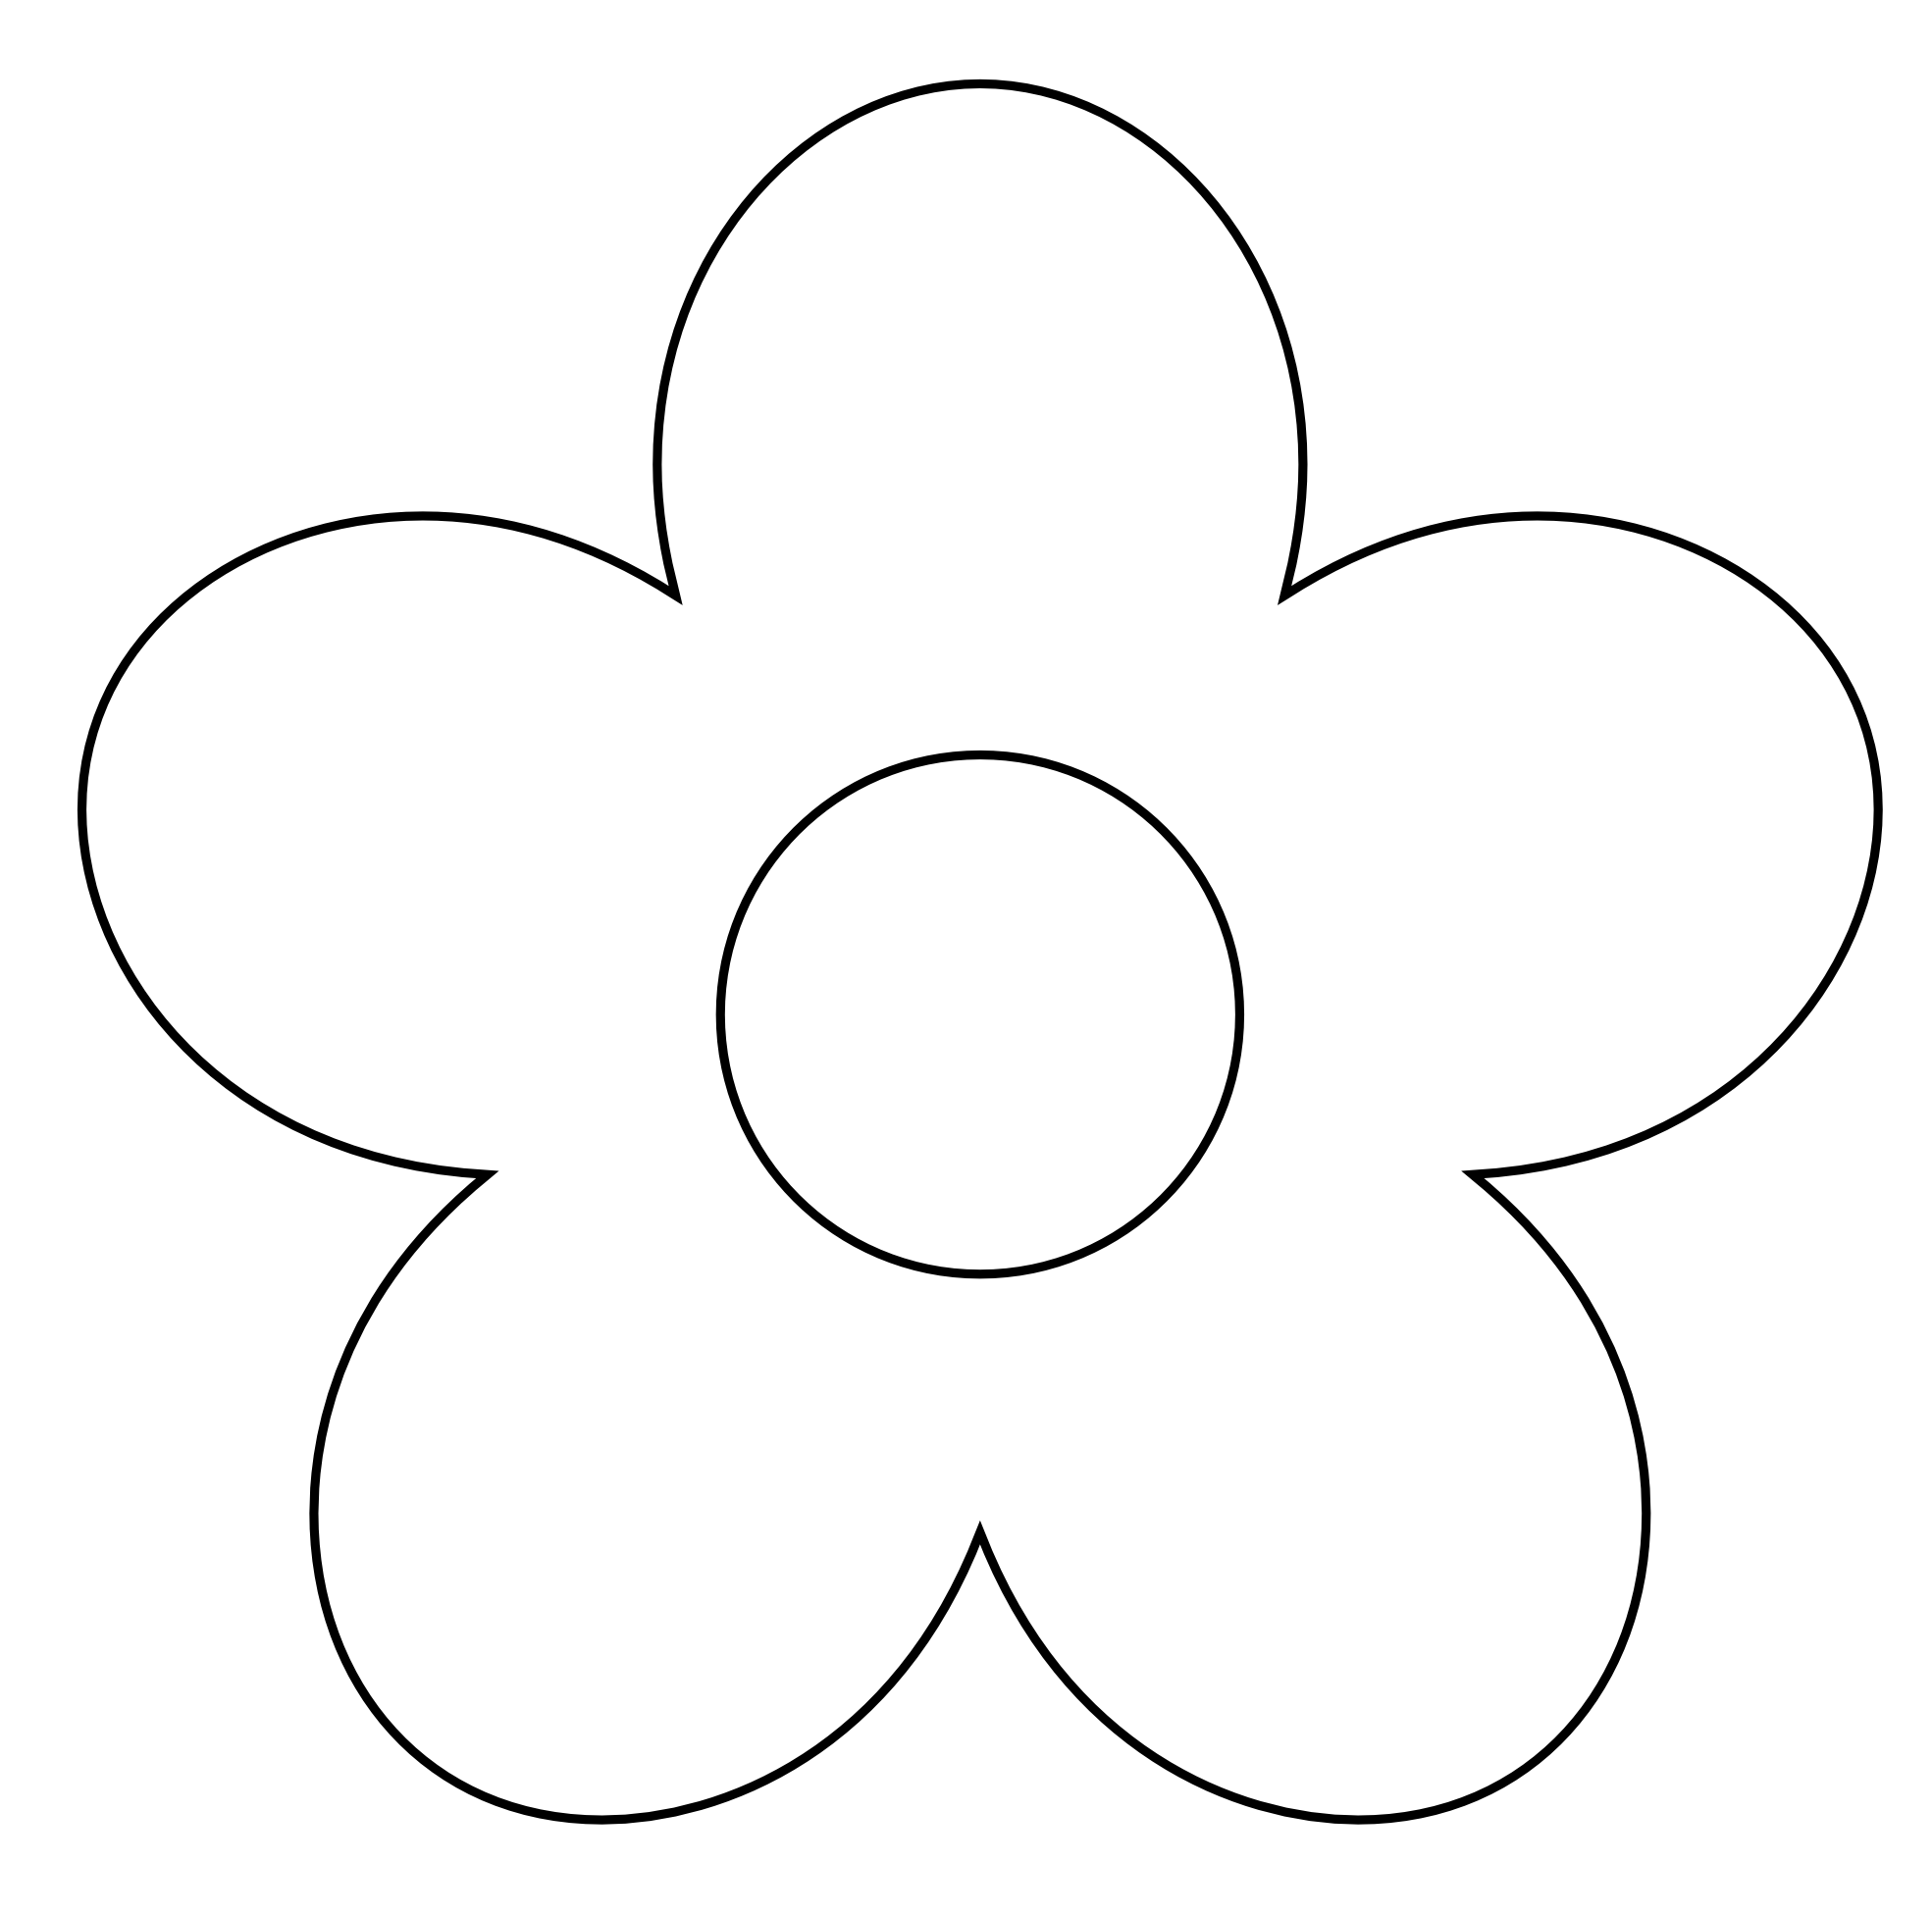 Flower Clipart Black And White | Clipart Panda - Free Clipart Images